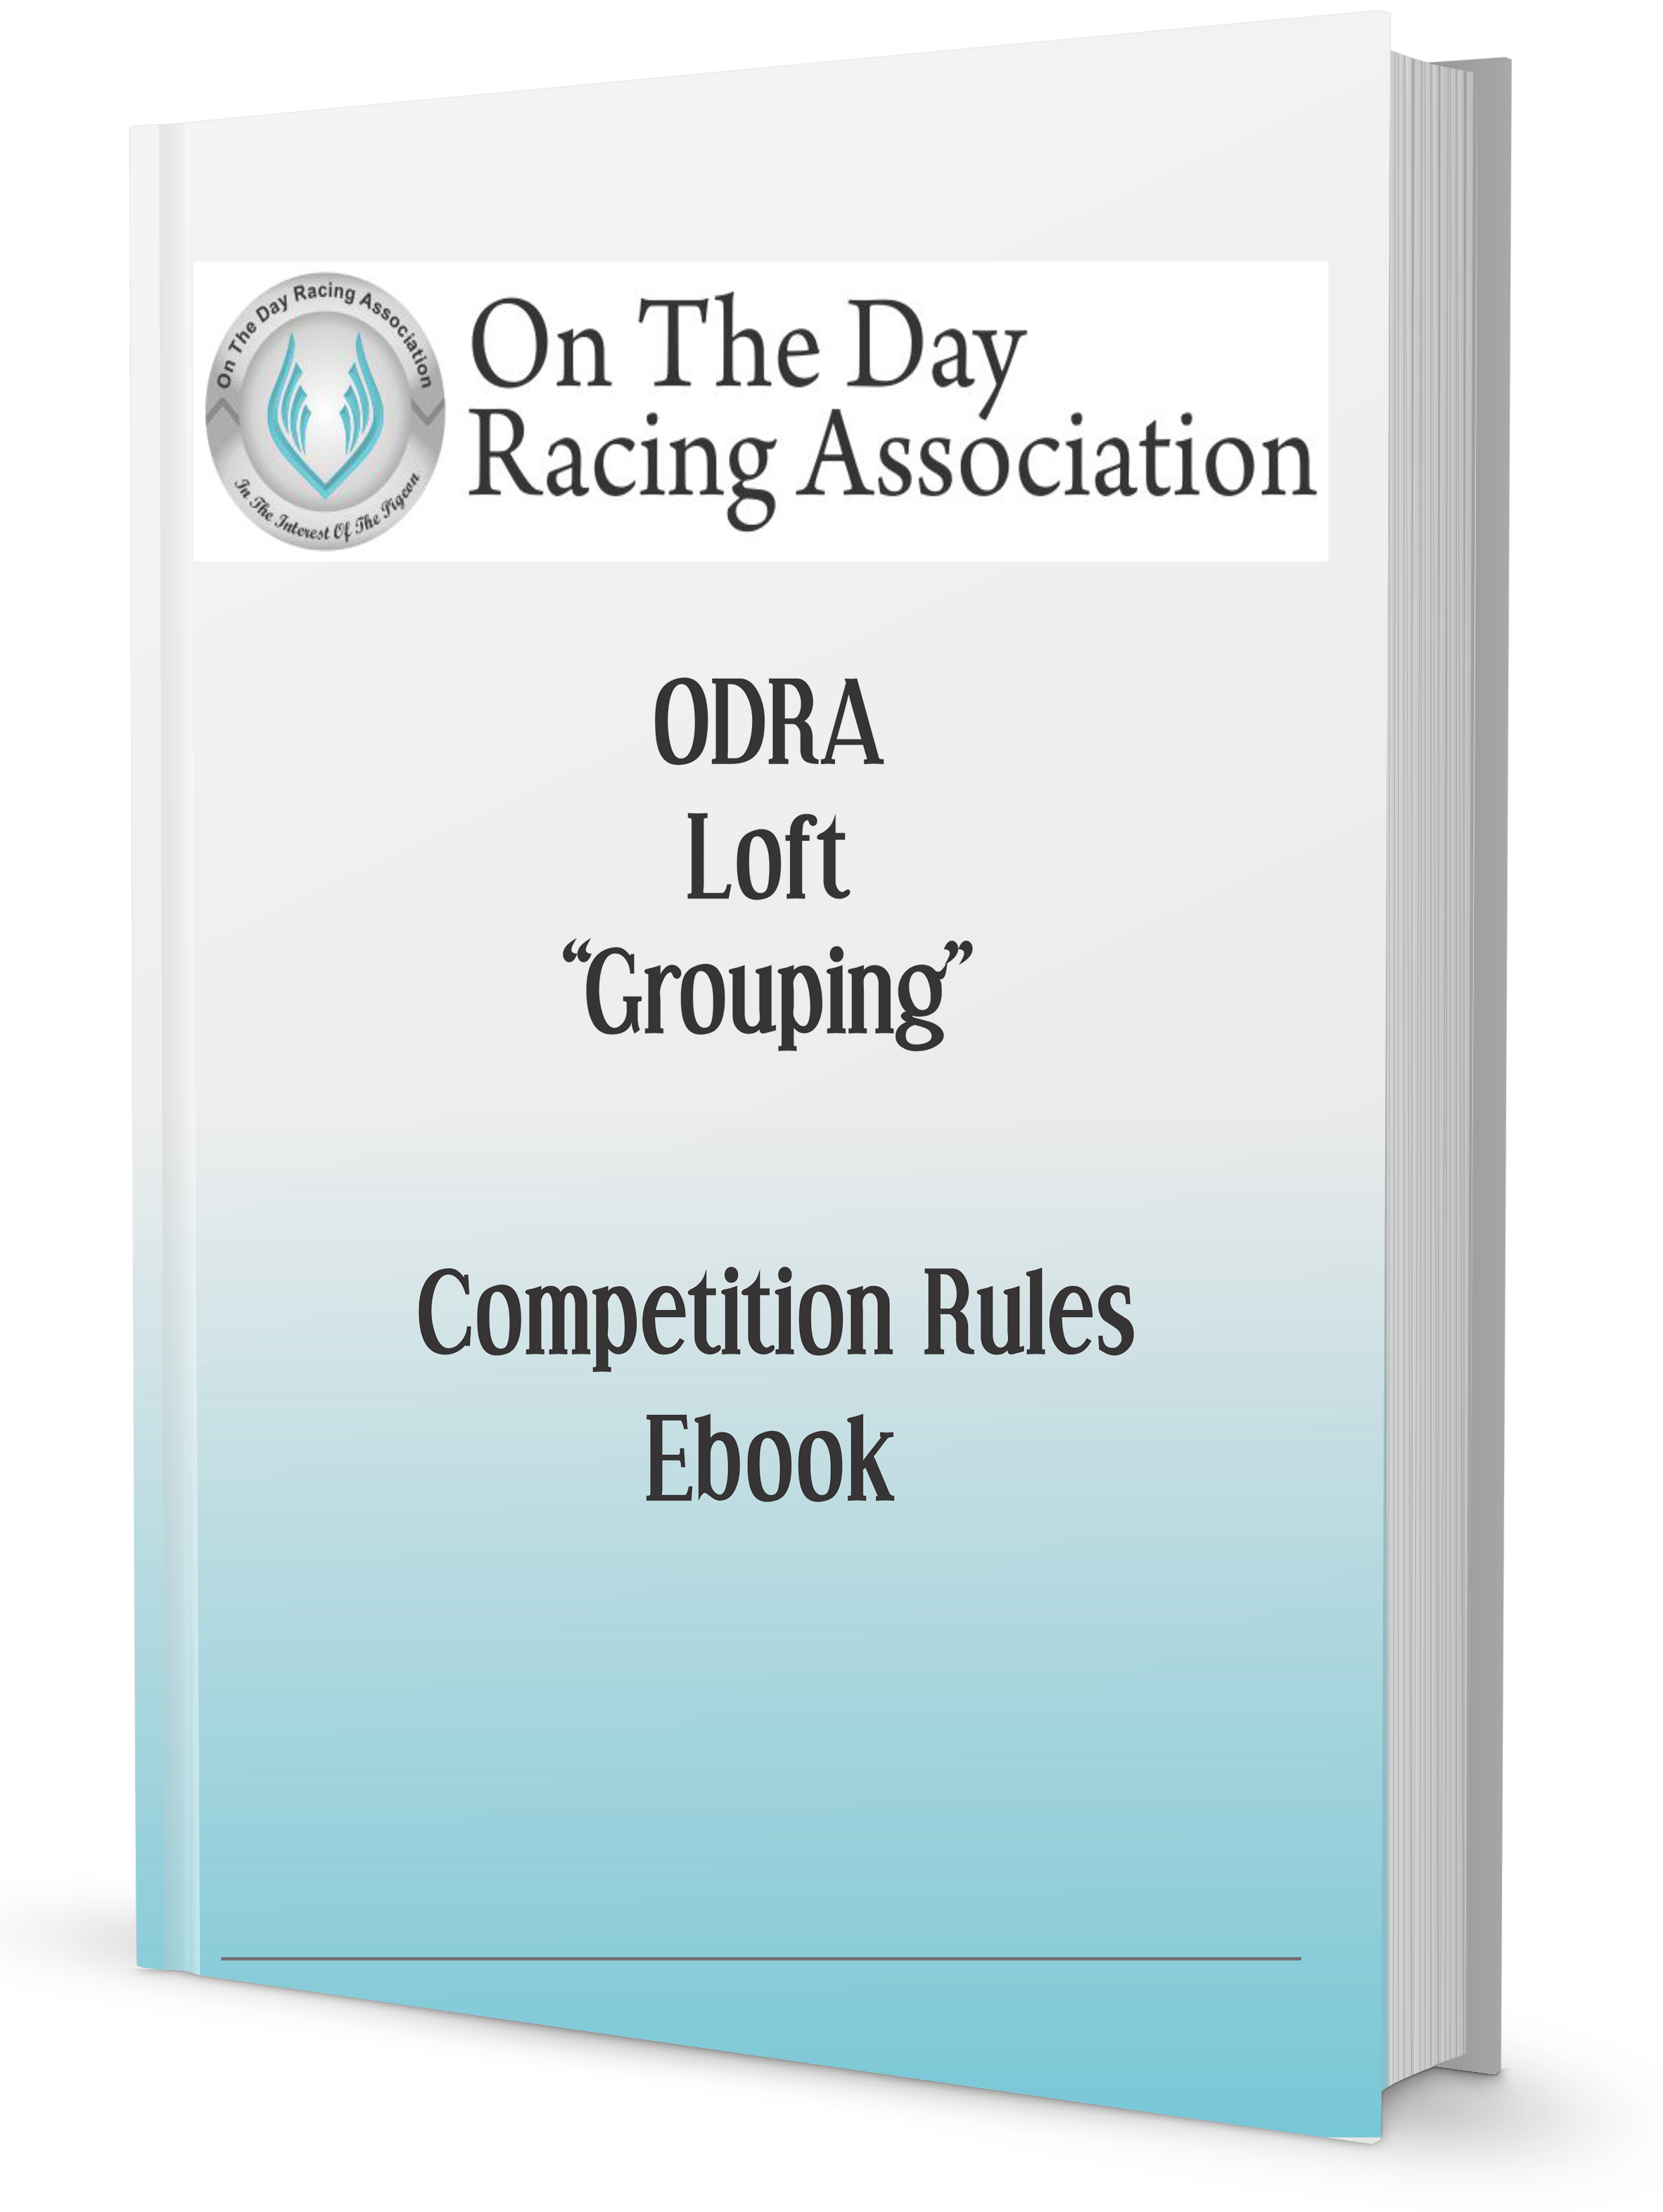 ODRA Opperations Manual